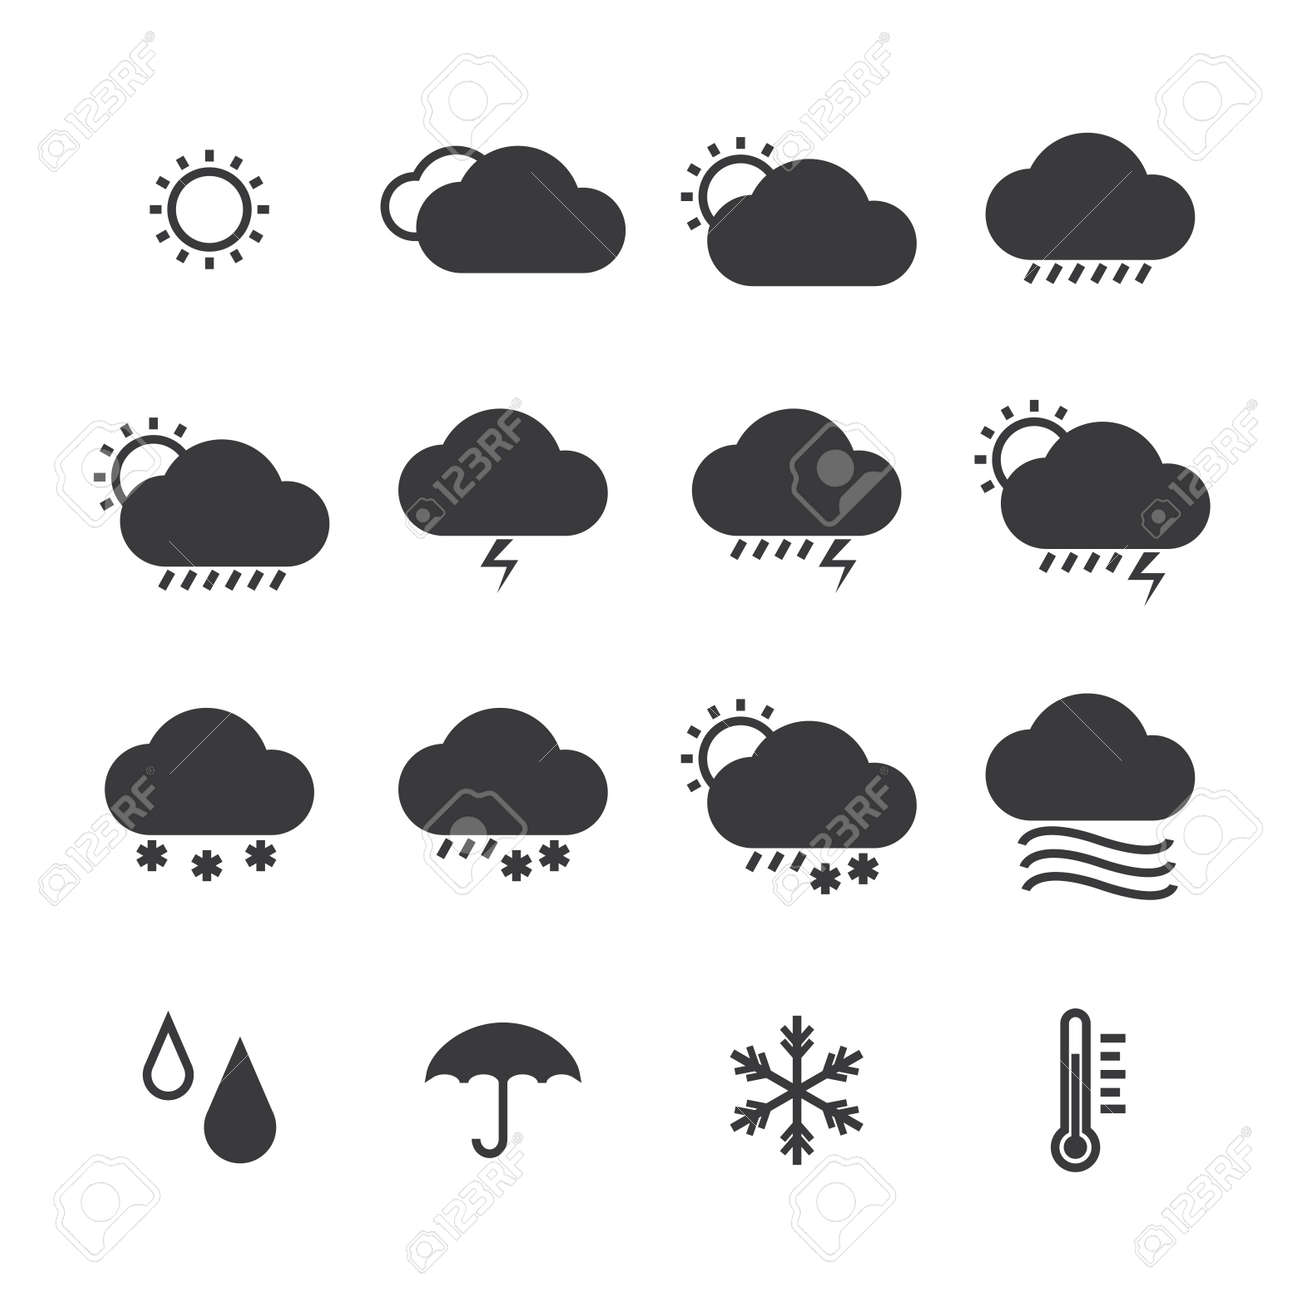 icon pack weather isolated background - 21759715